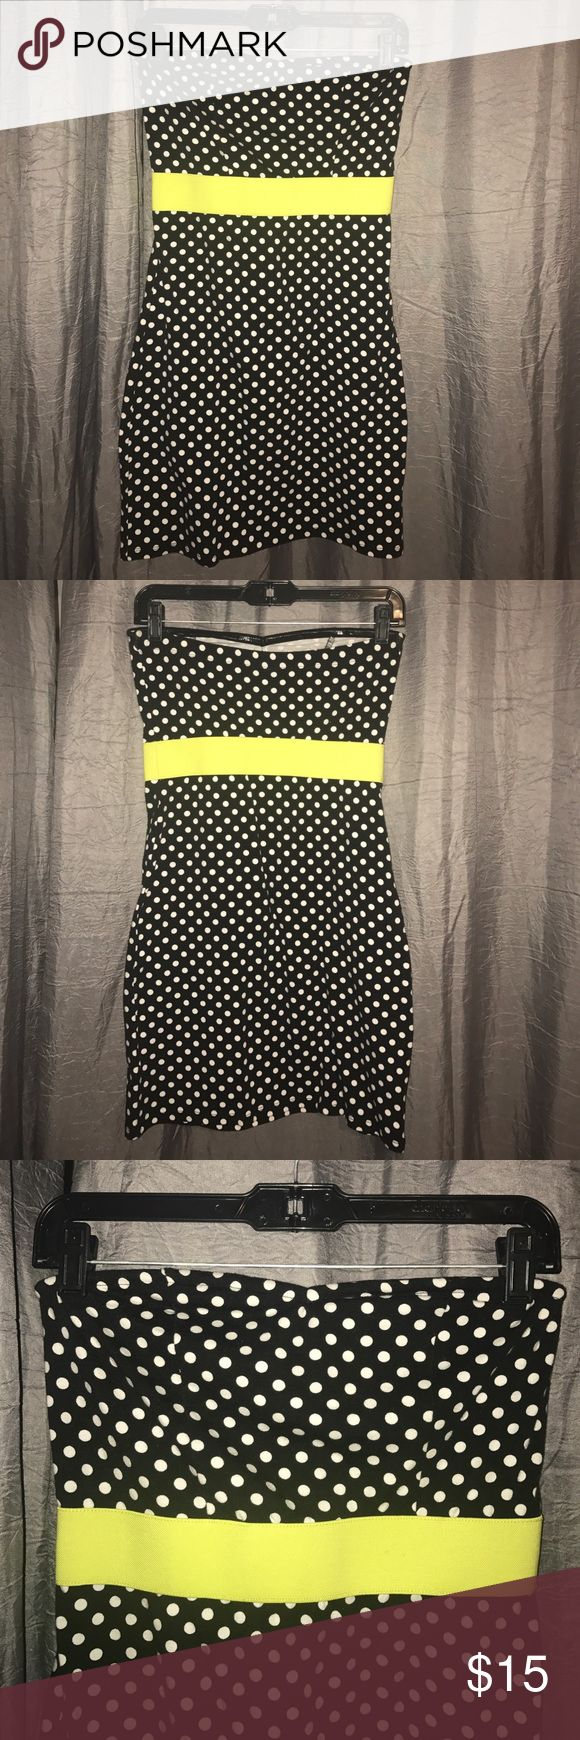 Polka Dot Bodycon Dress Black and while polka dot bodycon dress with like green waistband. Perfect for a party or night out! Tags are removed but has never been worn Xhilaration Dresses Midi